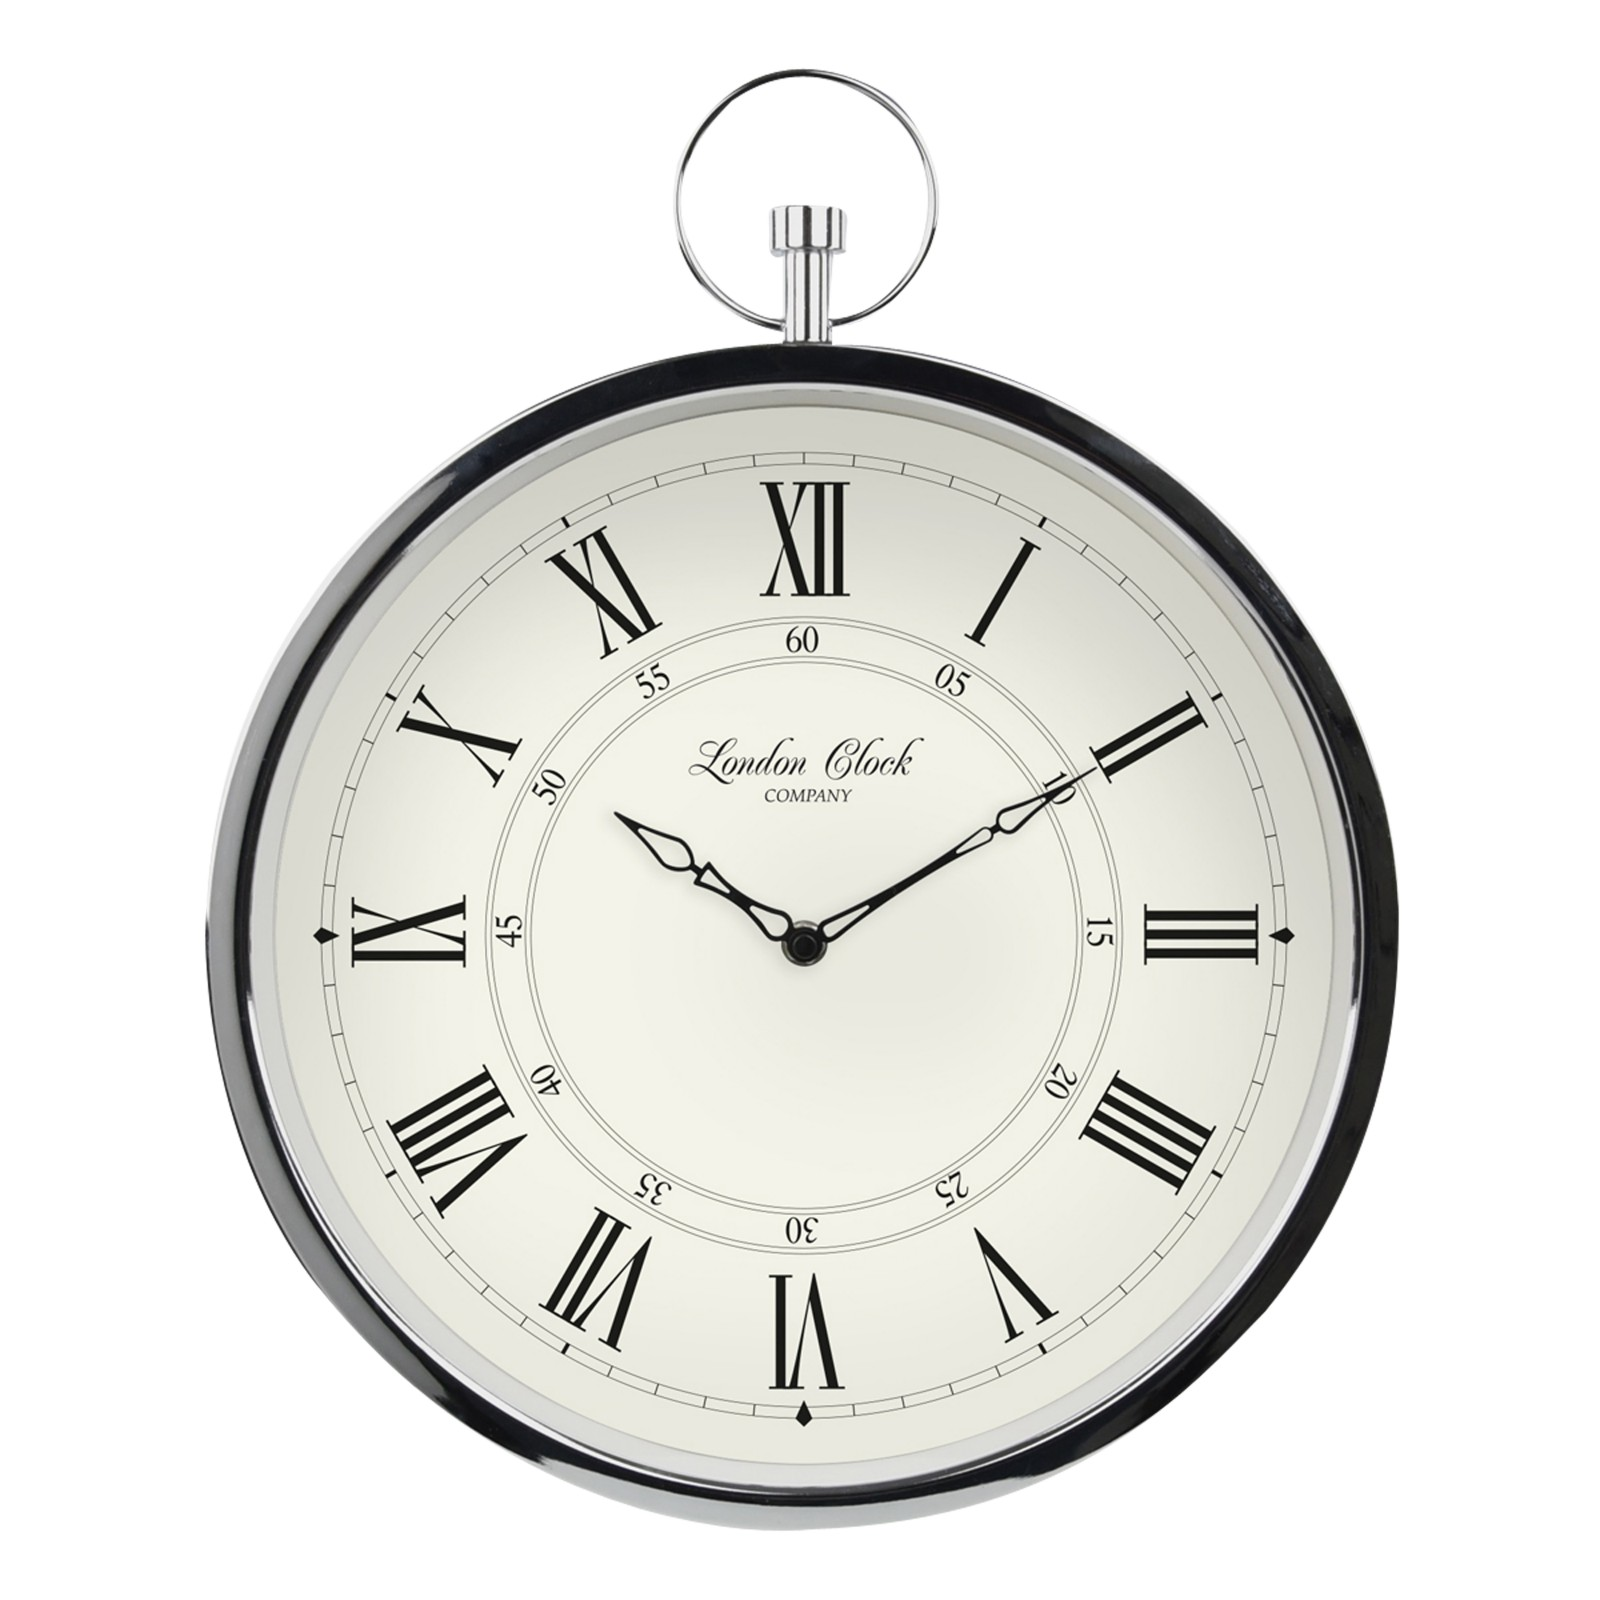 London Clock Company Fob Wall Clock